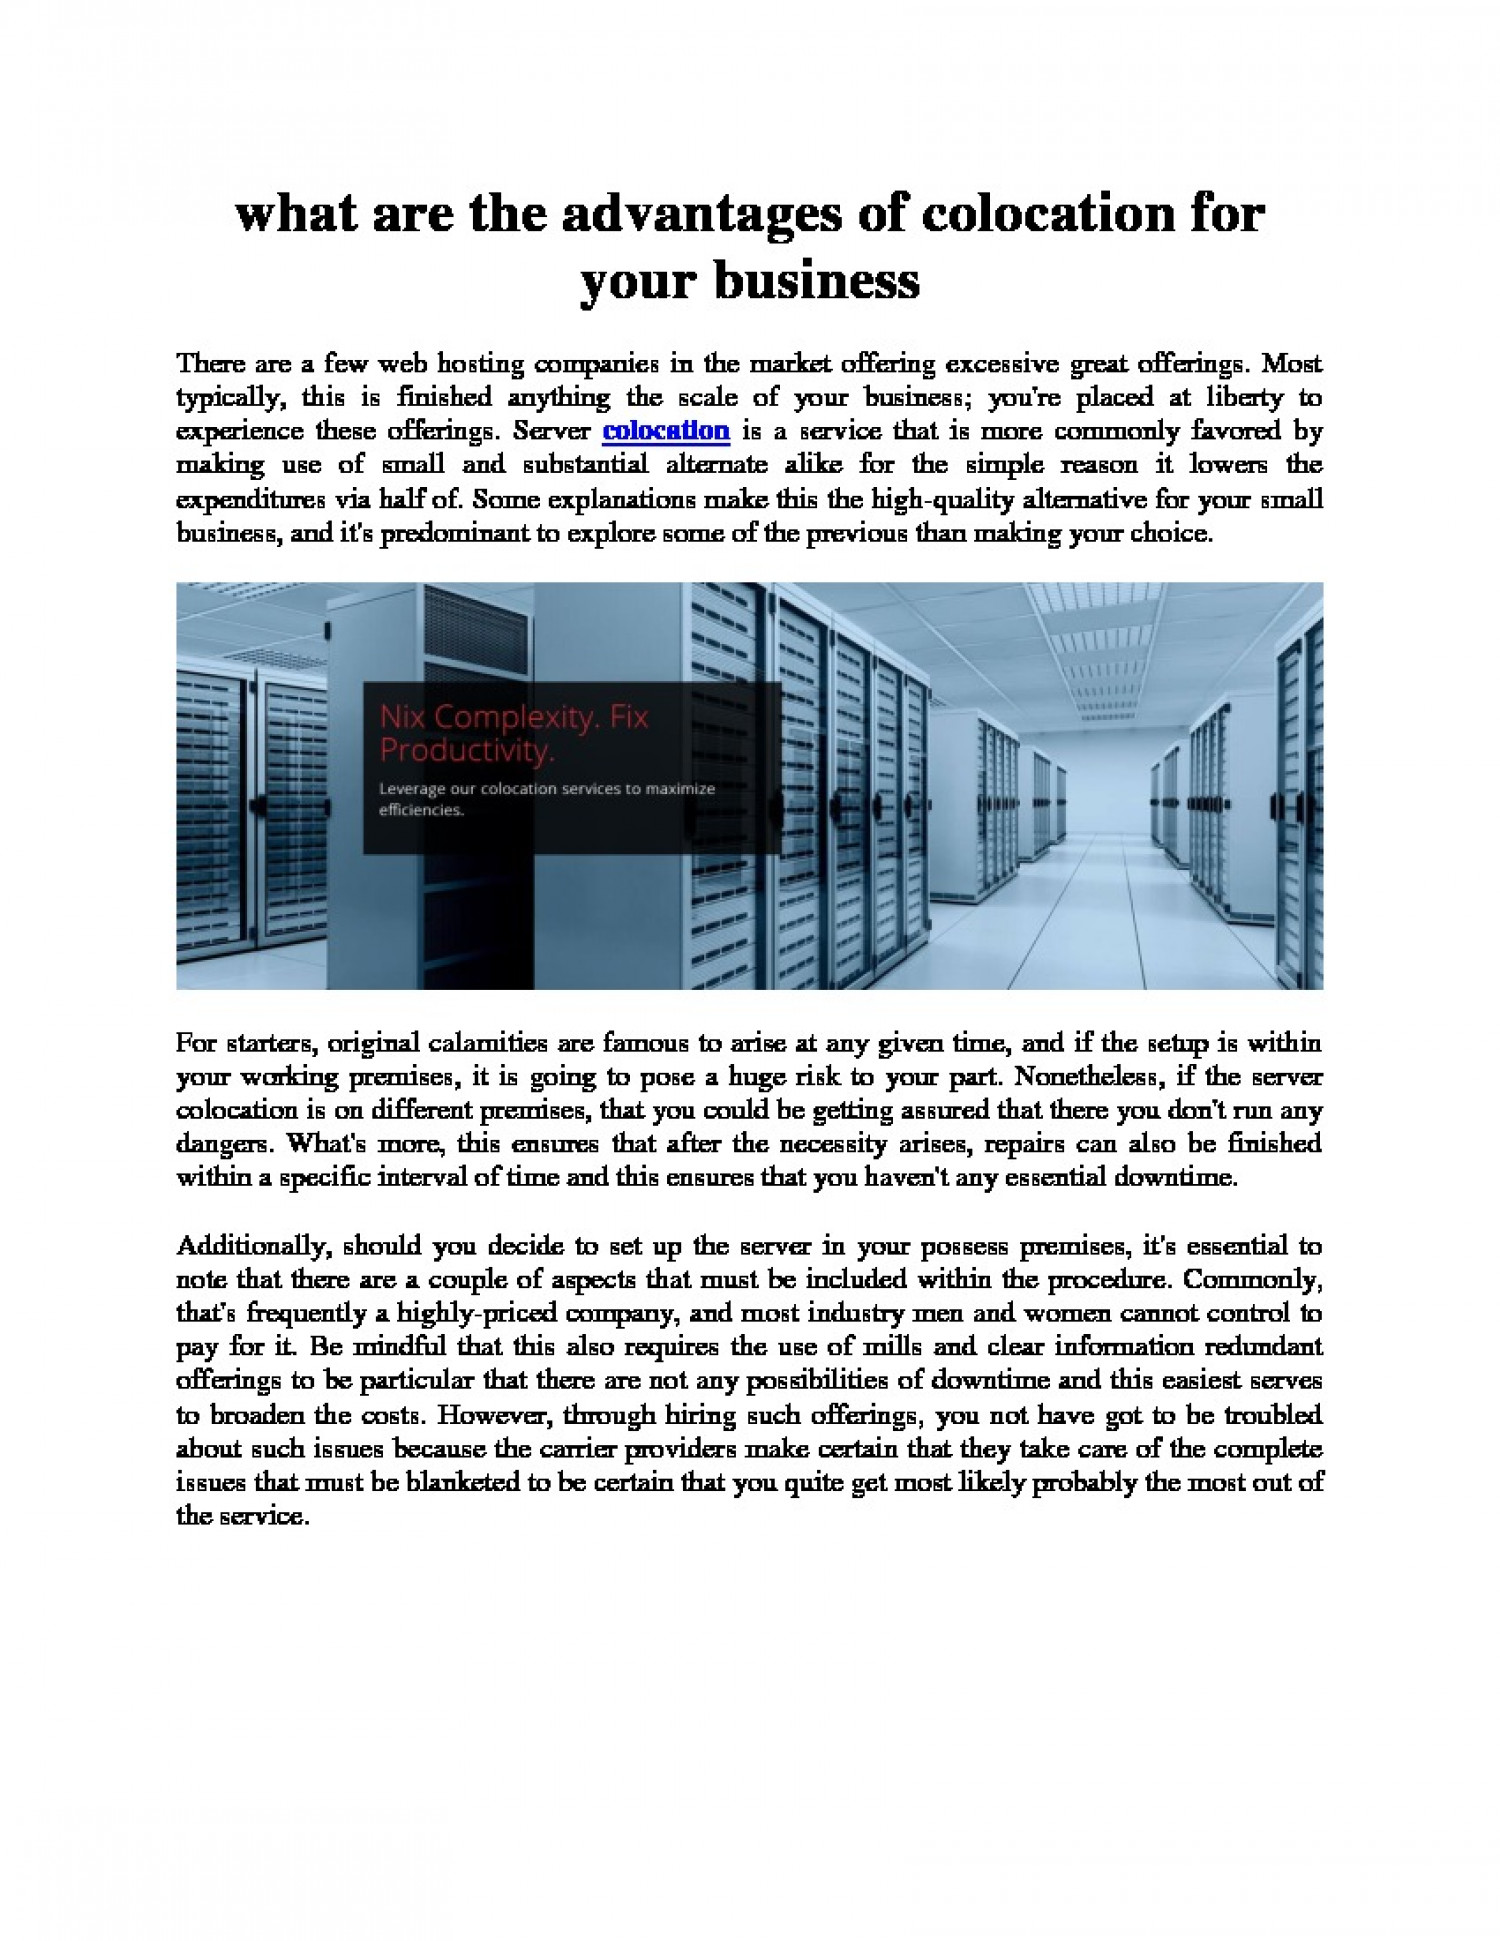 What are the advantages of colocation for your business Infographic